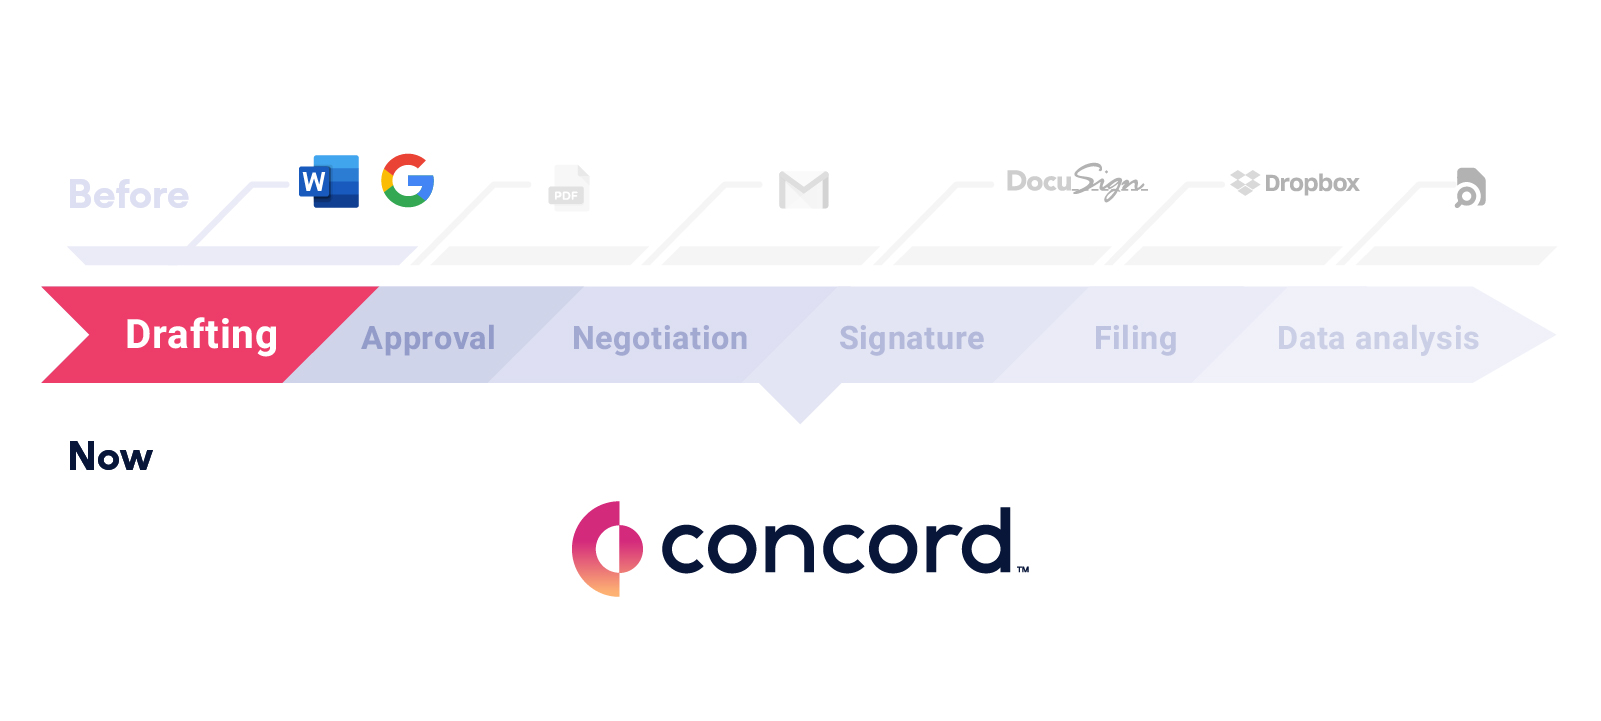 Stages of Contract Management: First stage - drafting a contract